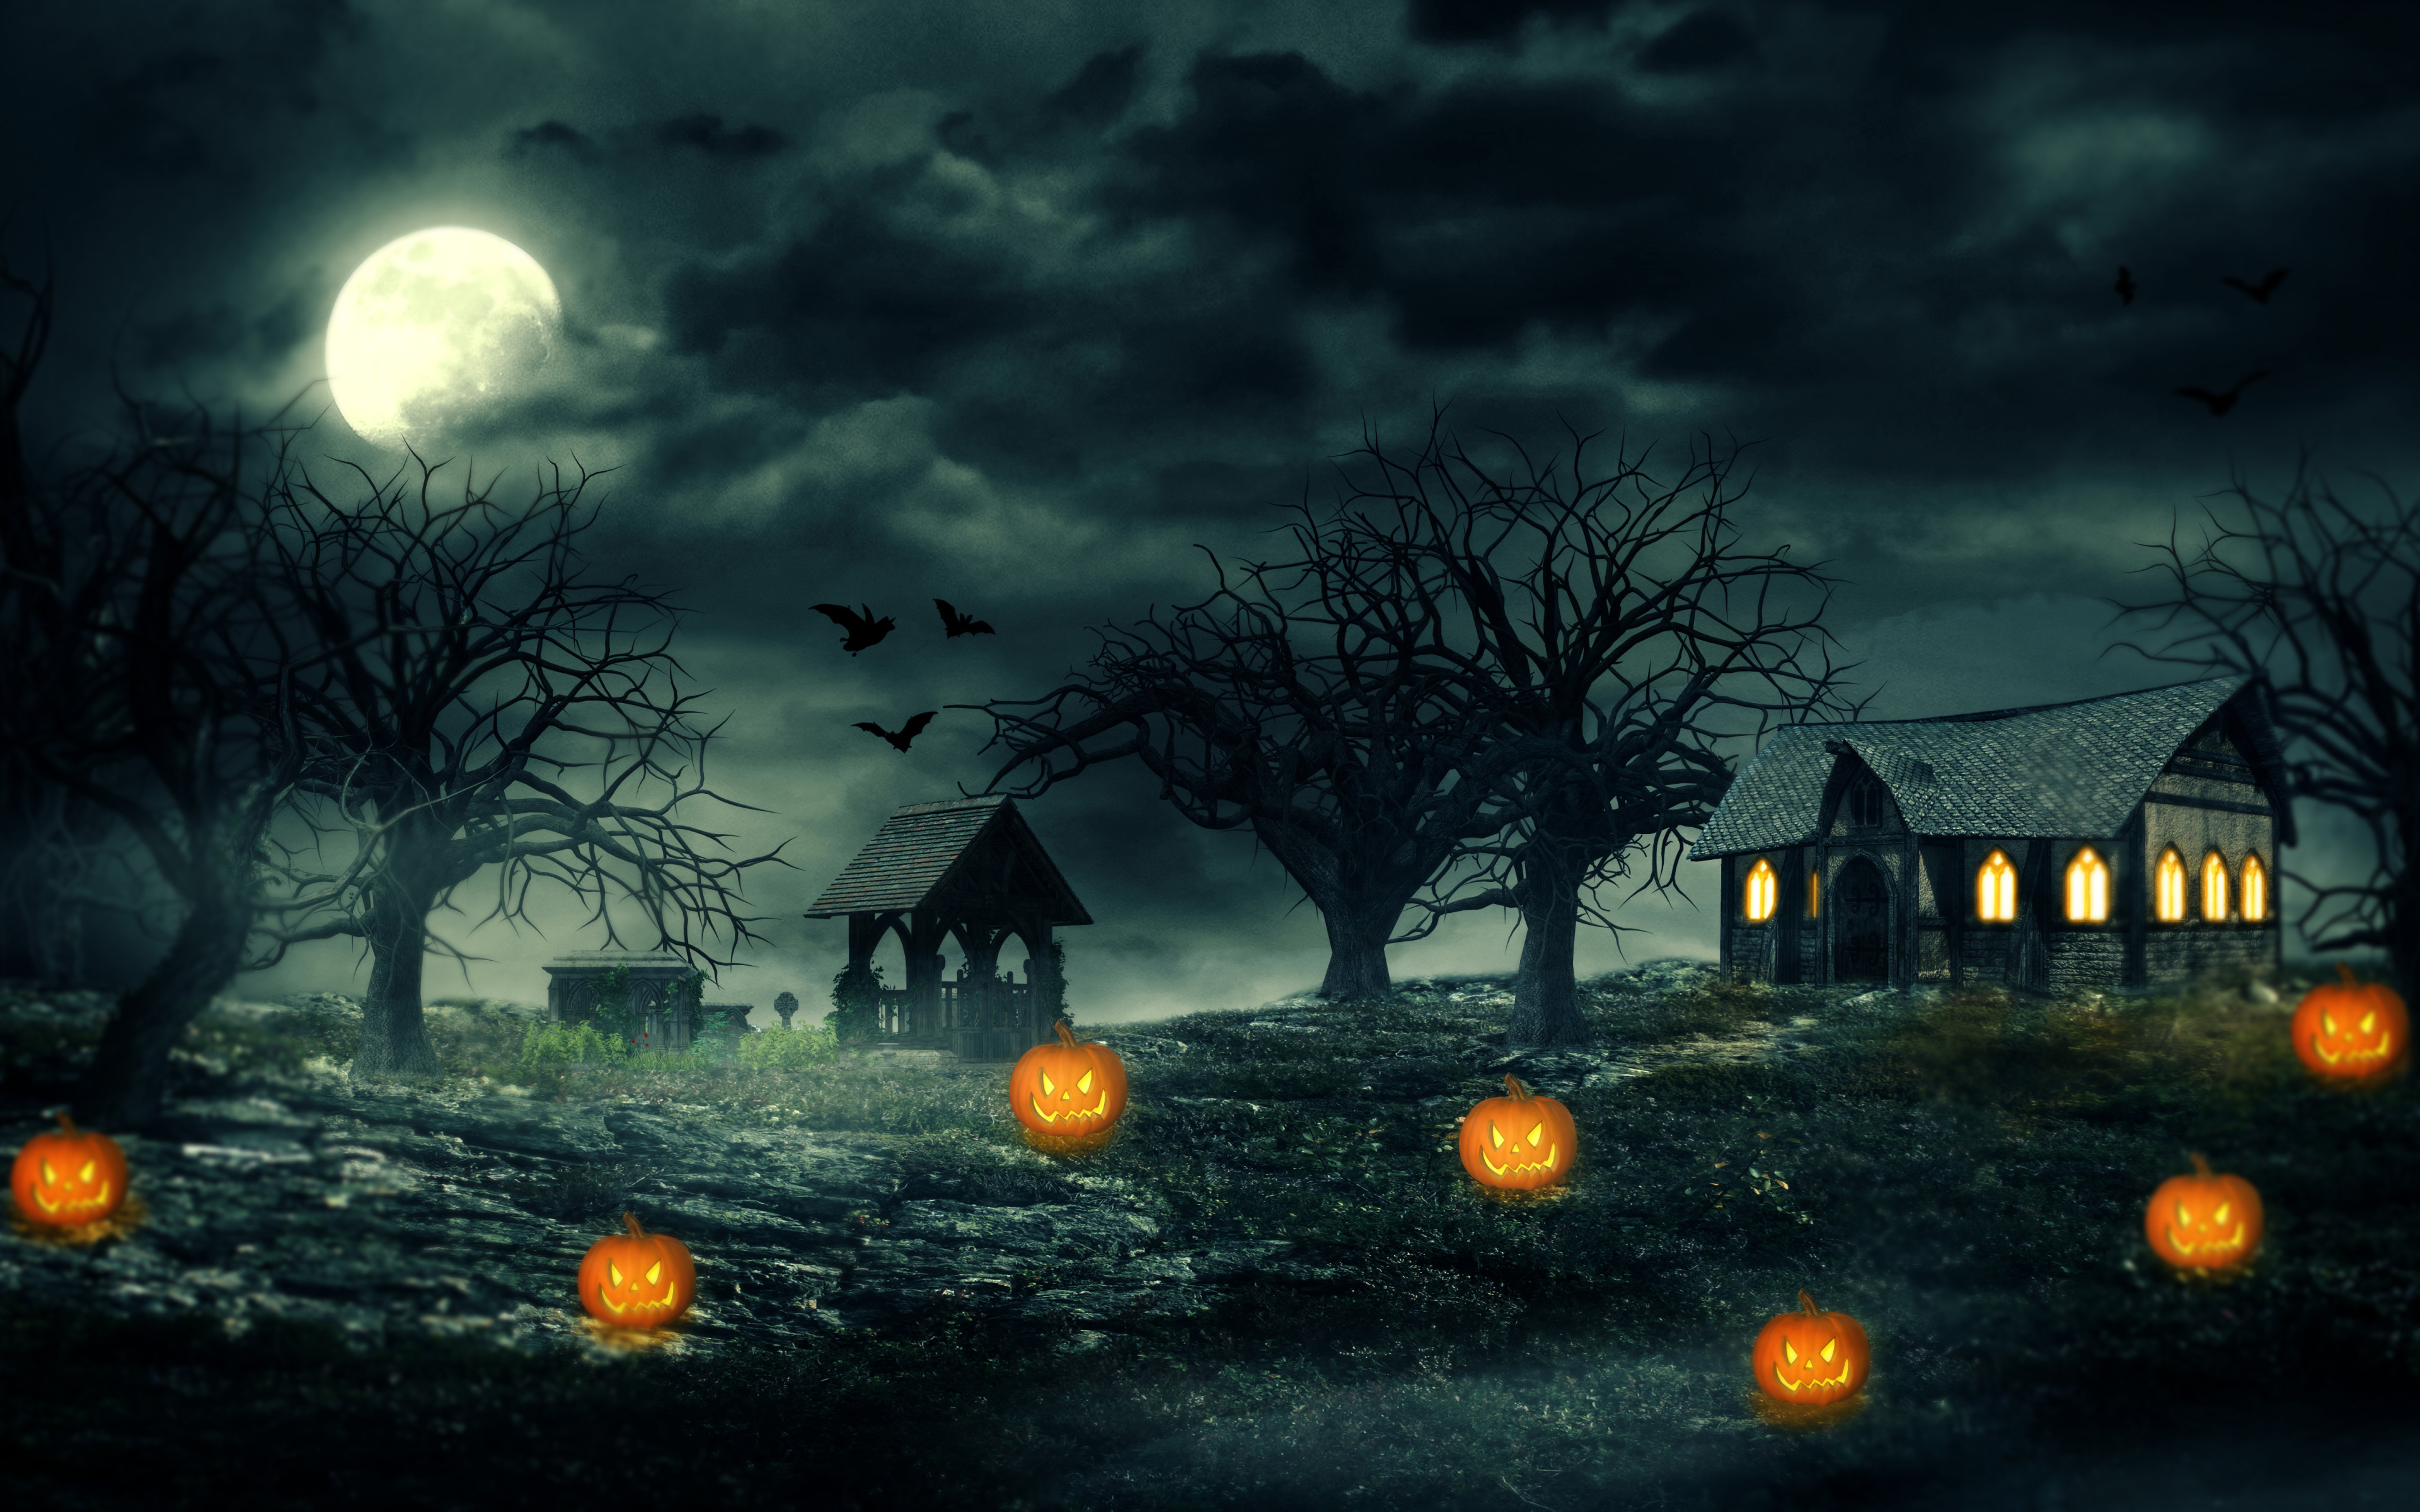 Pumpkin Halloween HD Wallpaper 3840x2400